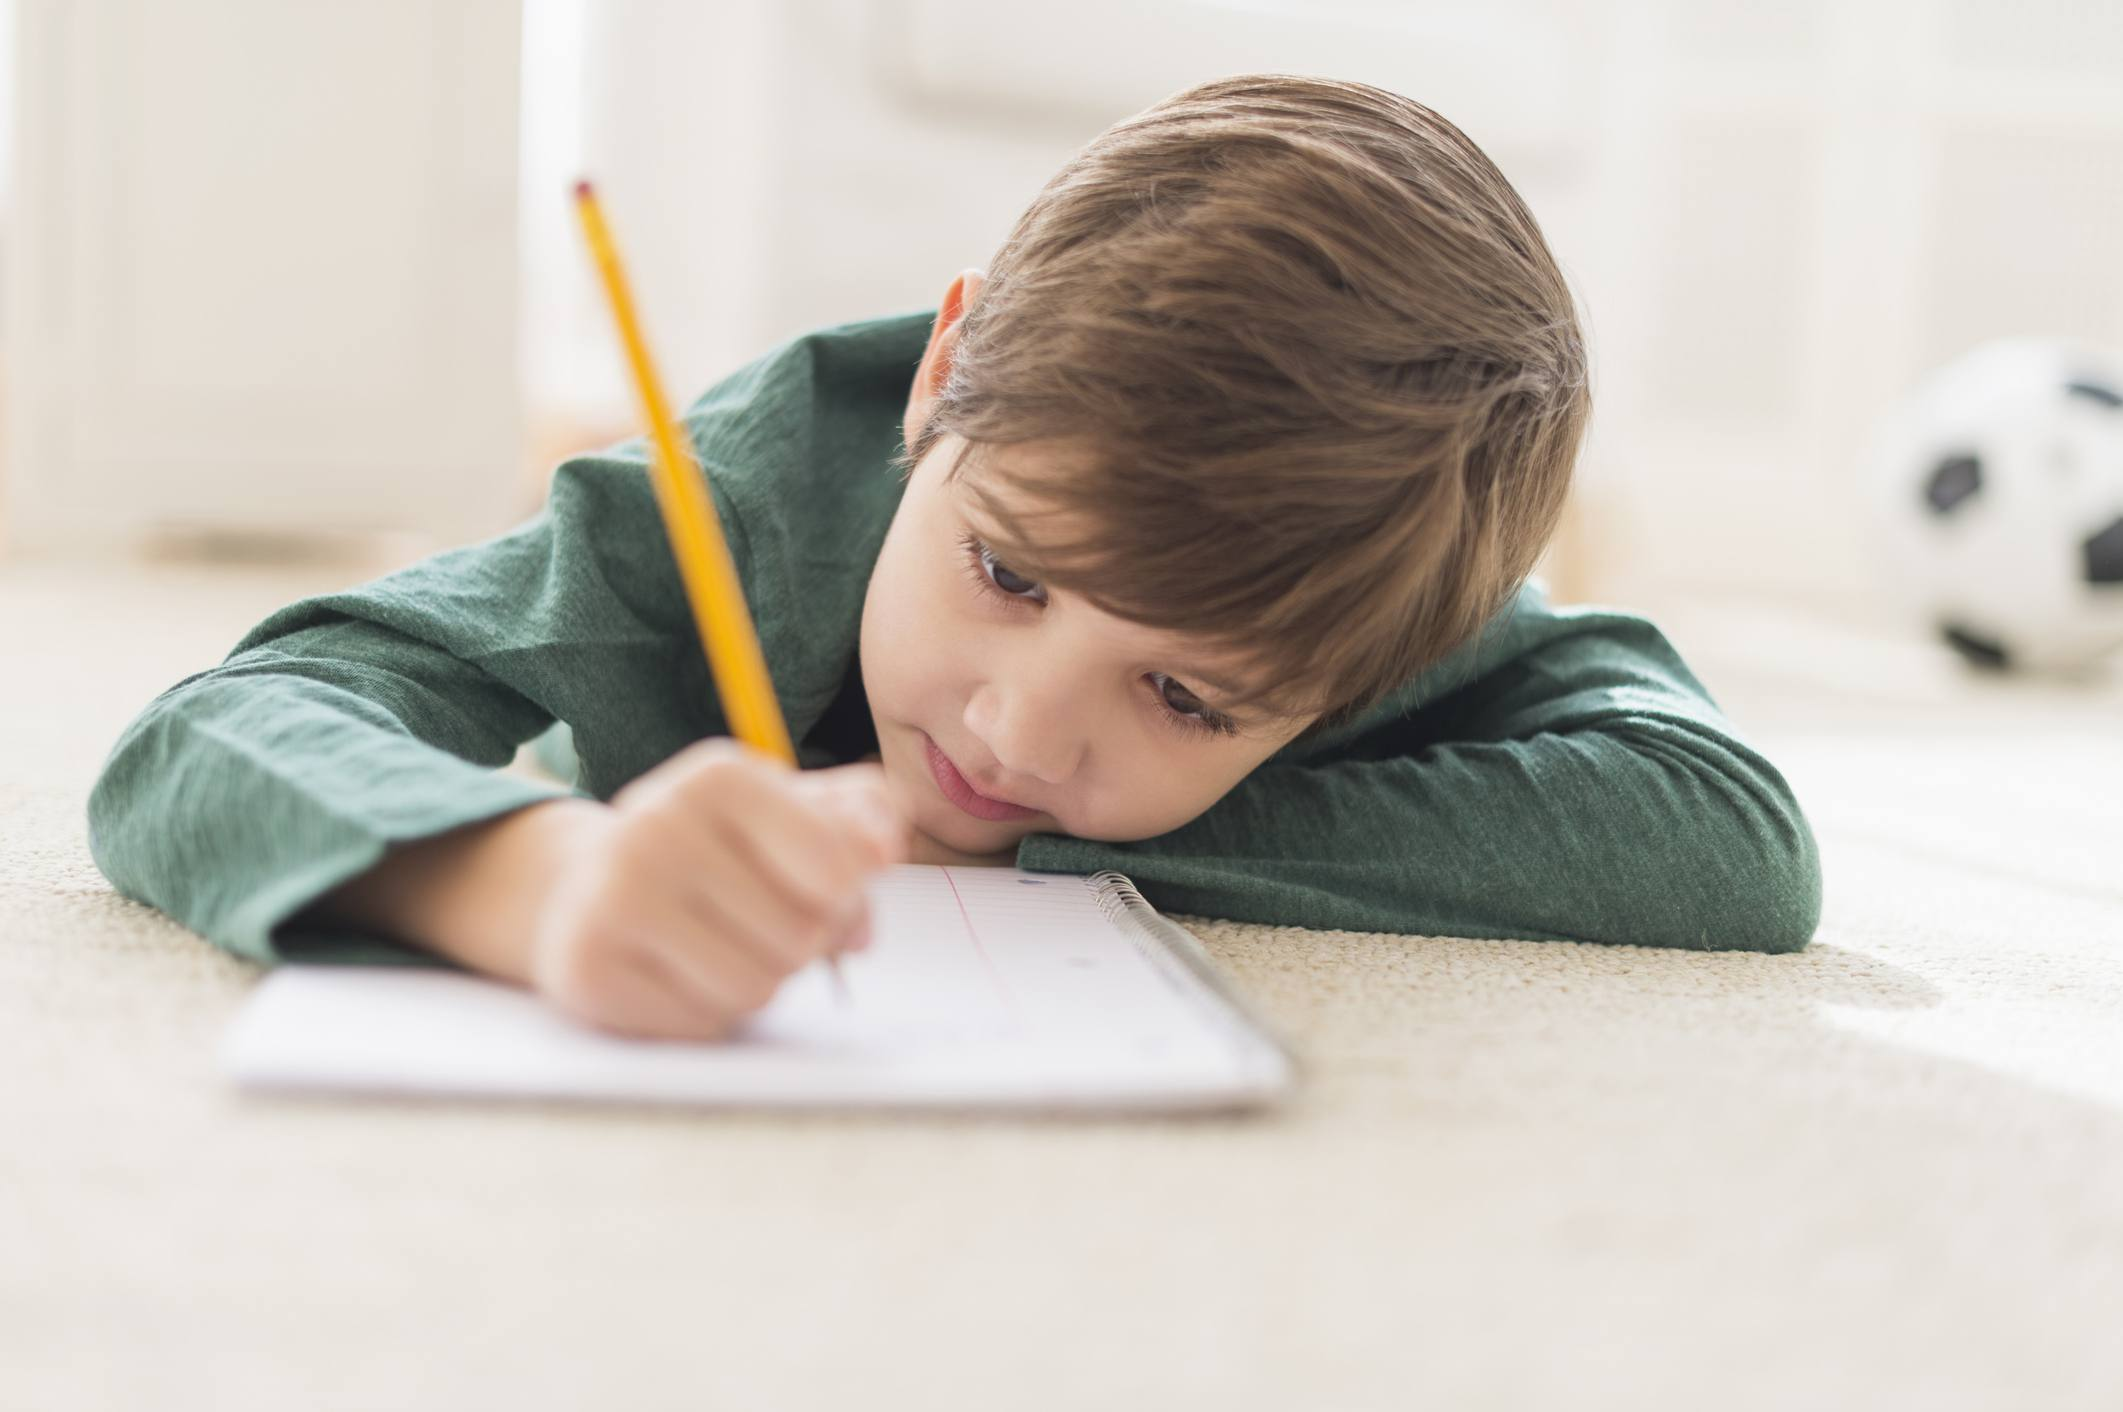 Little boy writing in a notebook on the floor